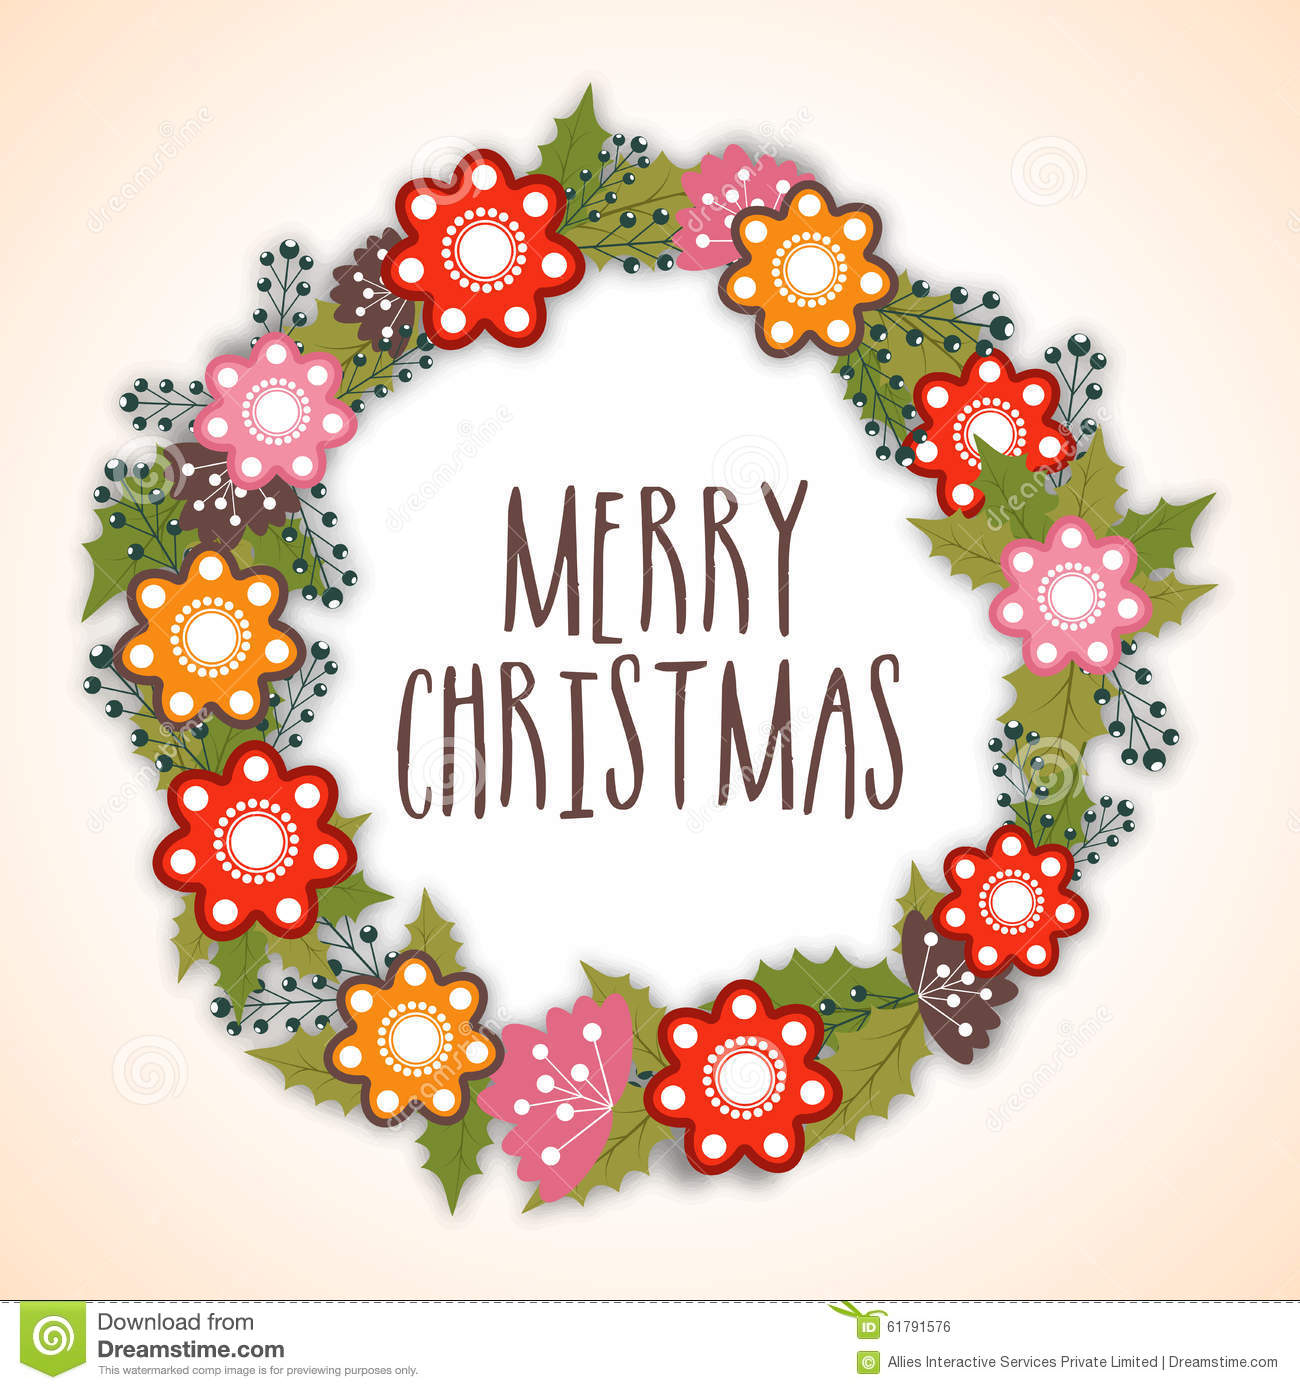 Beautiful greeting card for merry christmas stock photo image beautiful greeting card for merry christmas kristyandbryce Image collections